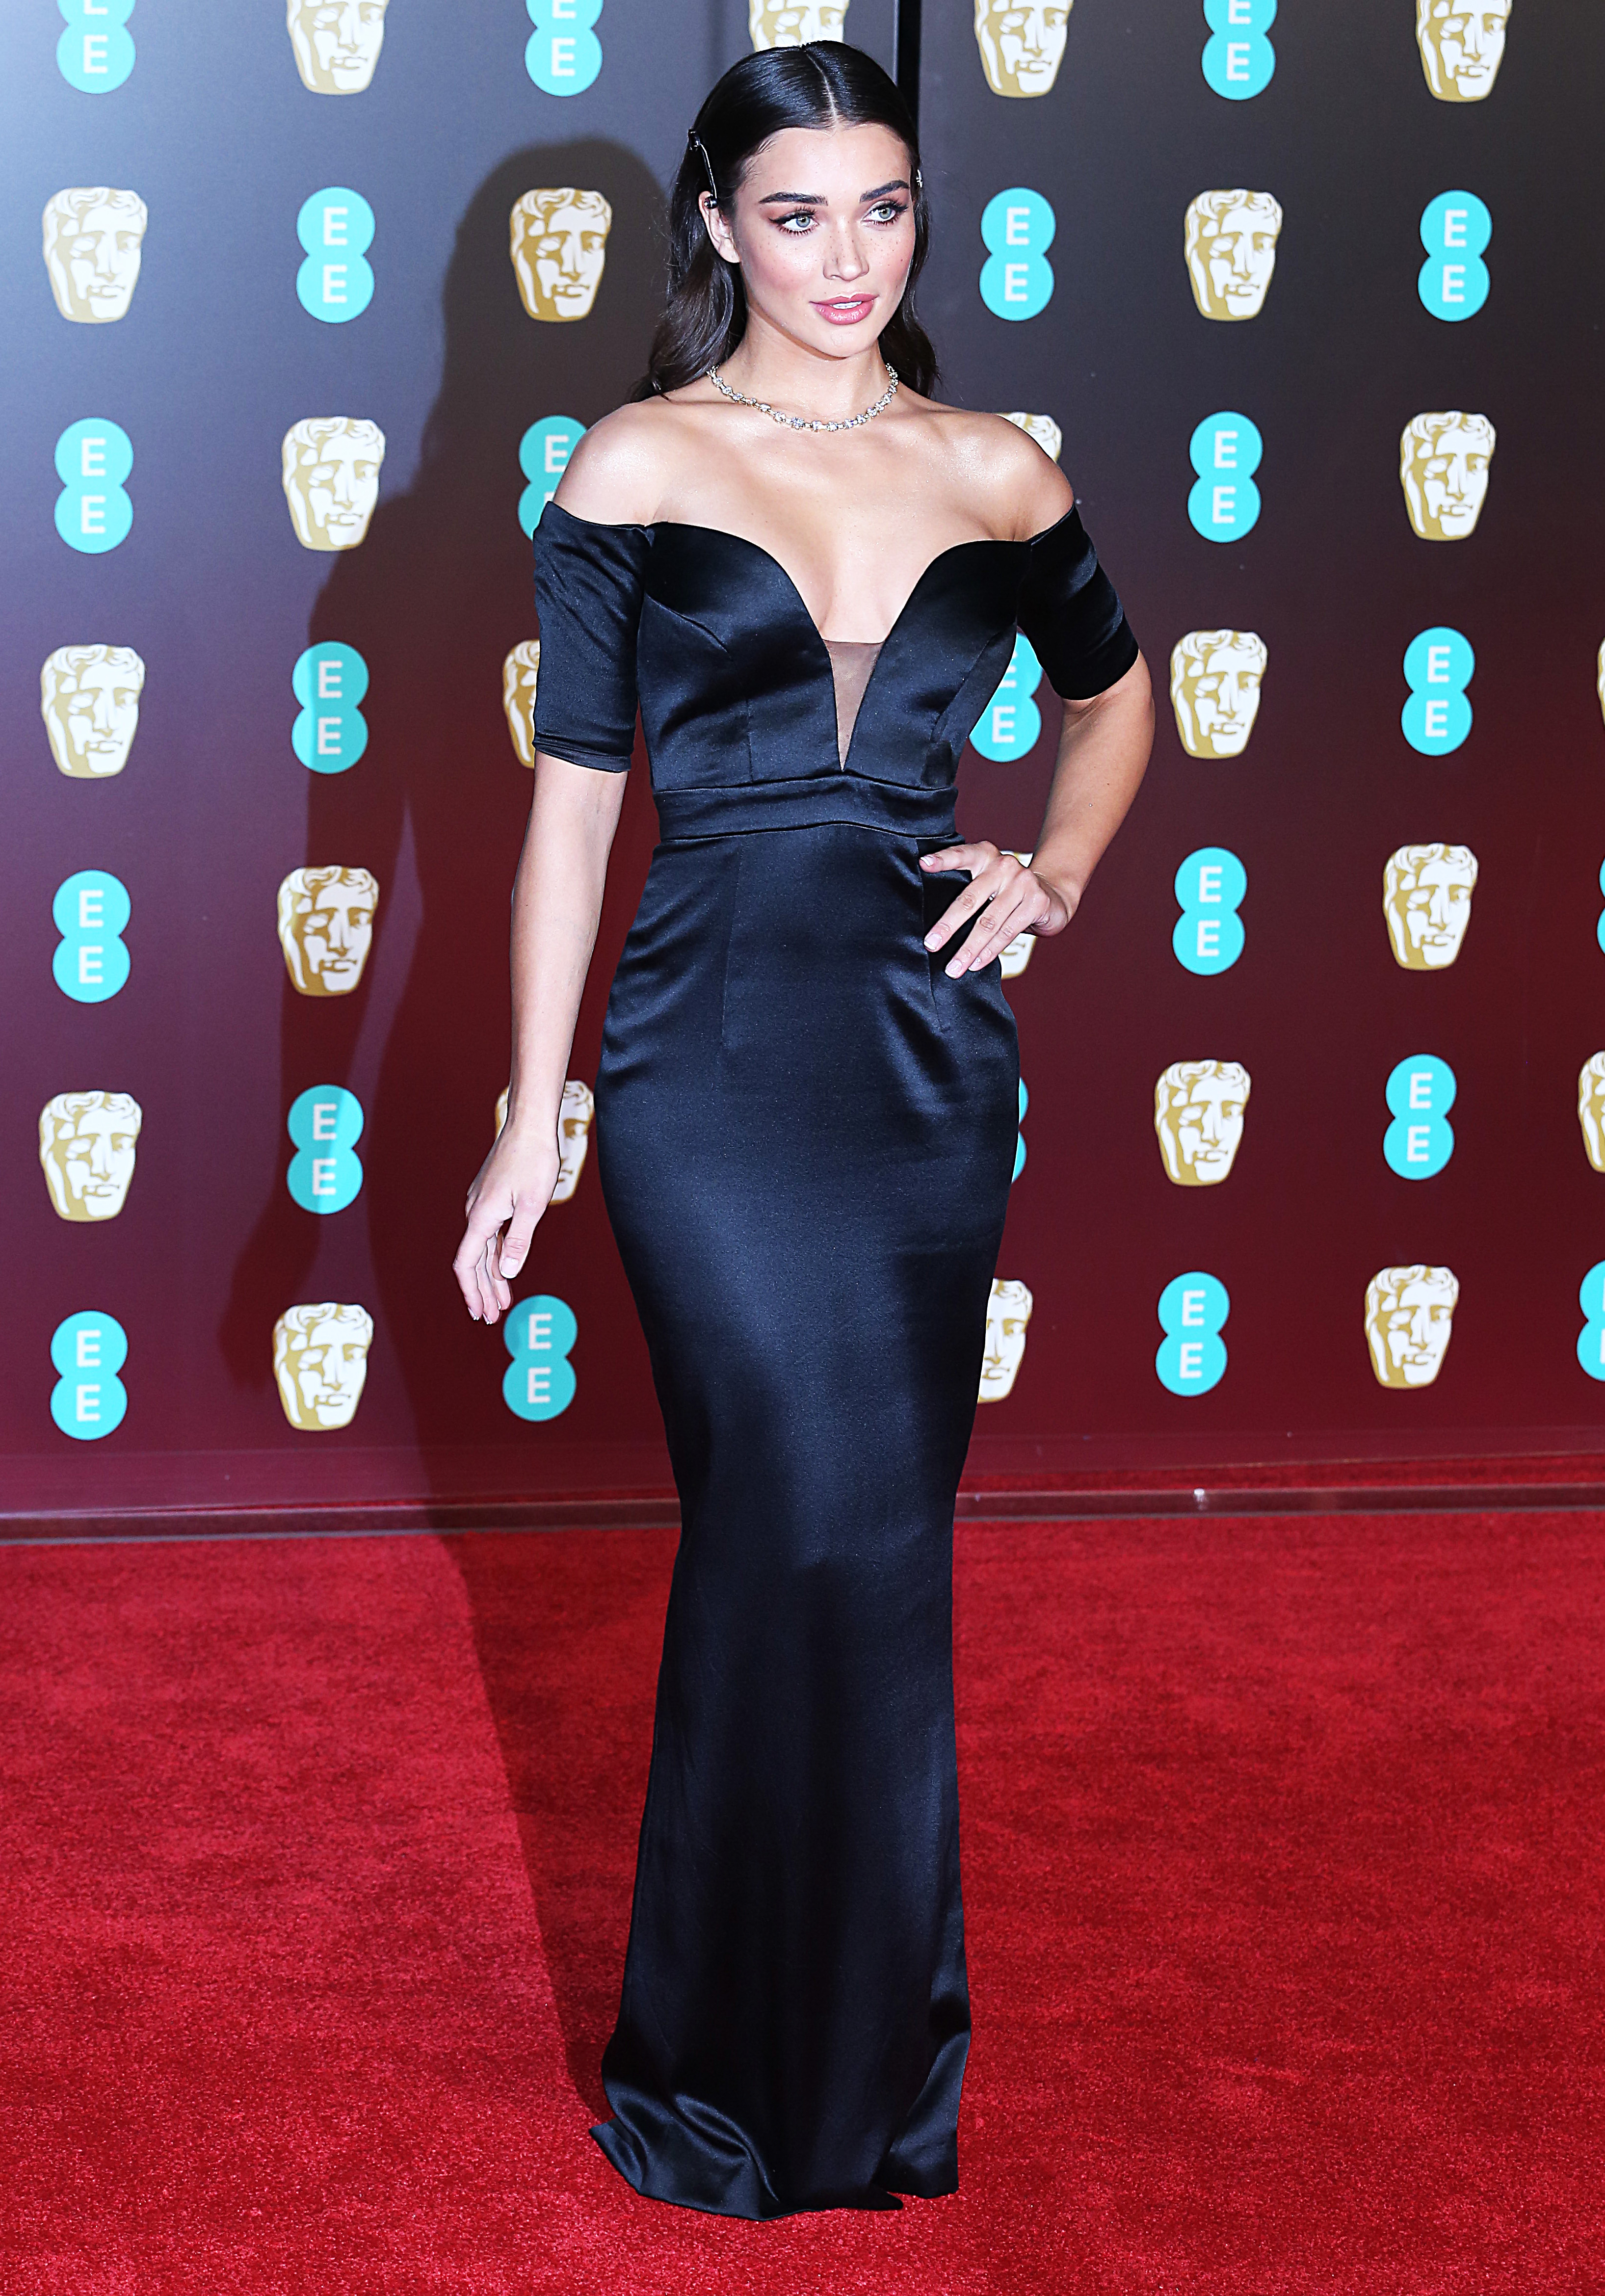 EE British Academy Film Awards 2018 (BAFTAs), Royal Albert Hall, London UK, 18 February 2018, Photo by Brett D. Cove <P> Pictured: Amy Jackson <B>Ref: SPL1661266  190218  </B><BR/> Picture by: Brett D. Cove / Splash News<BR/> </P><P> <B>Splash News and Pictures</B><BR/> Los Angeles:310-821-2666<BR/> New York:212-619-2666<BR/> London:870-934-2666<BR/> <span id=